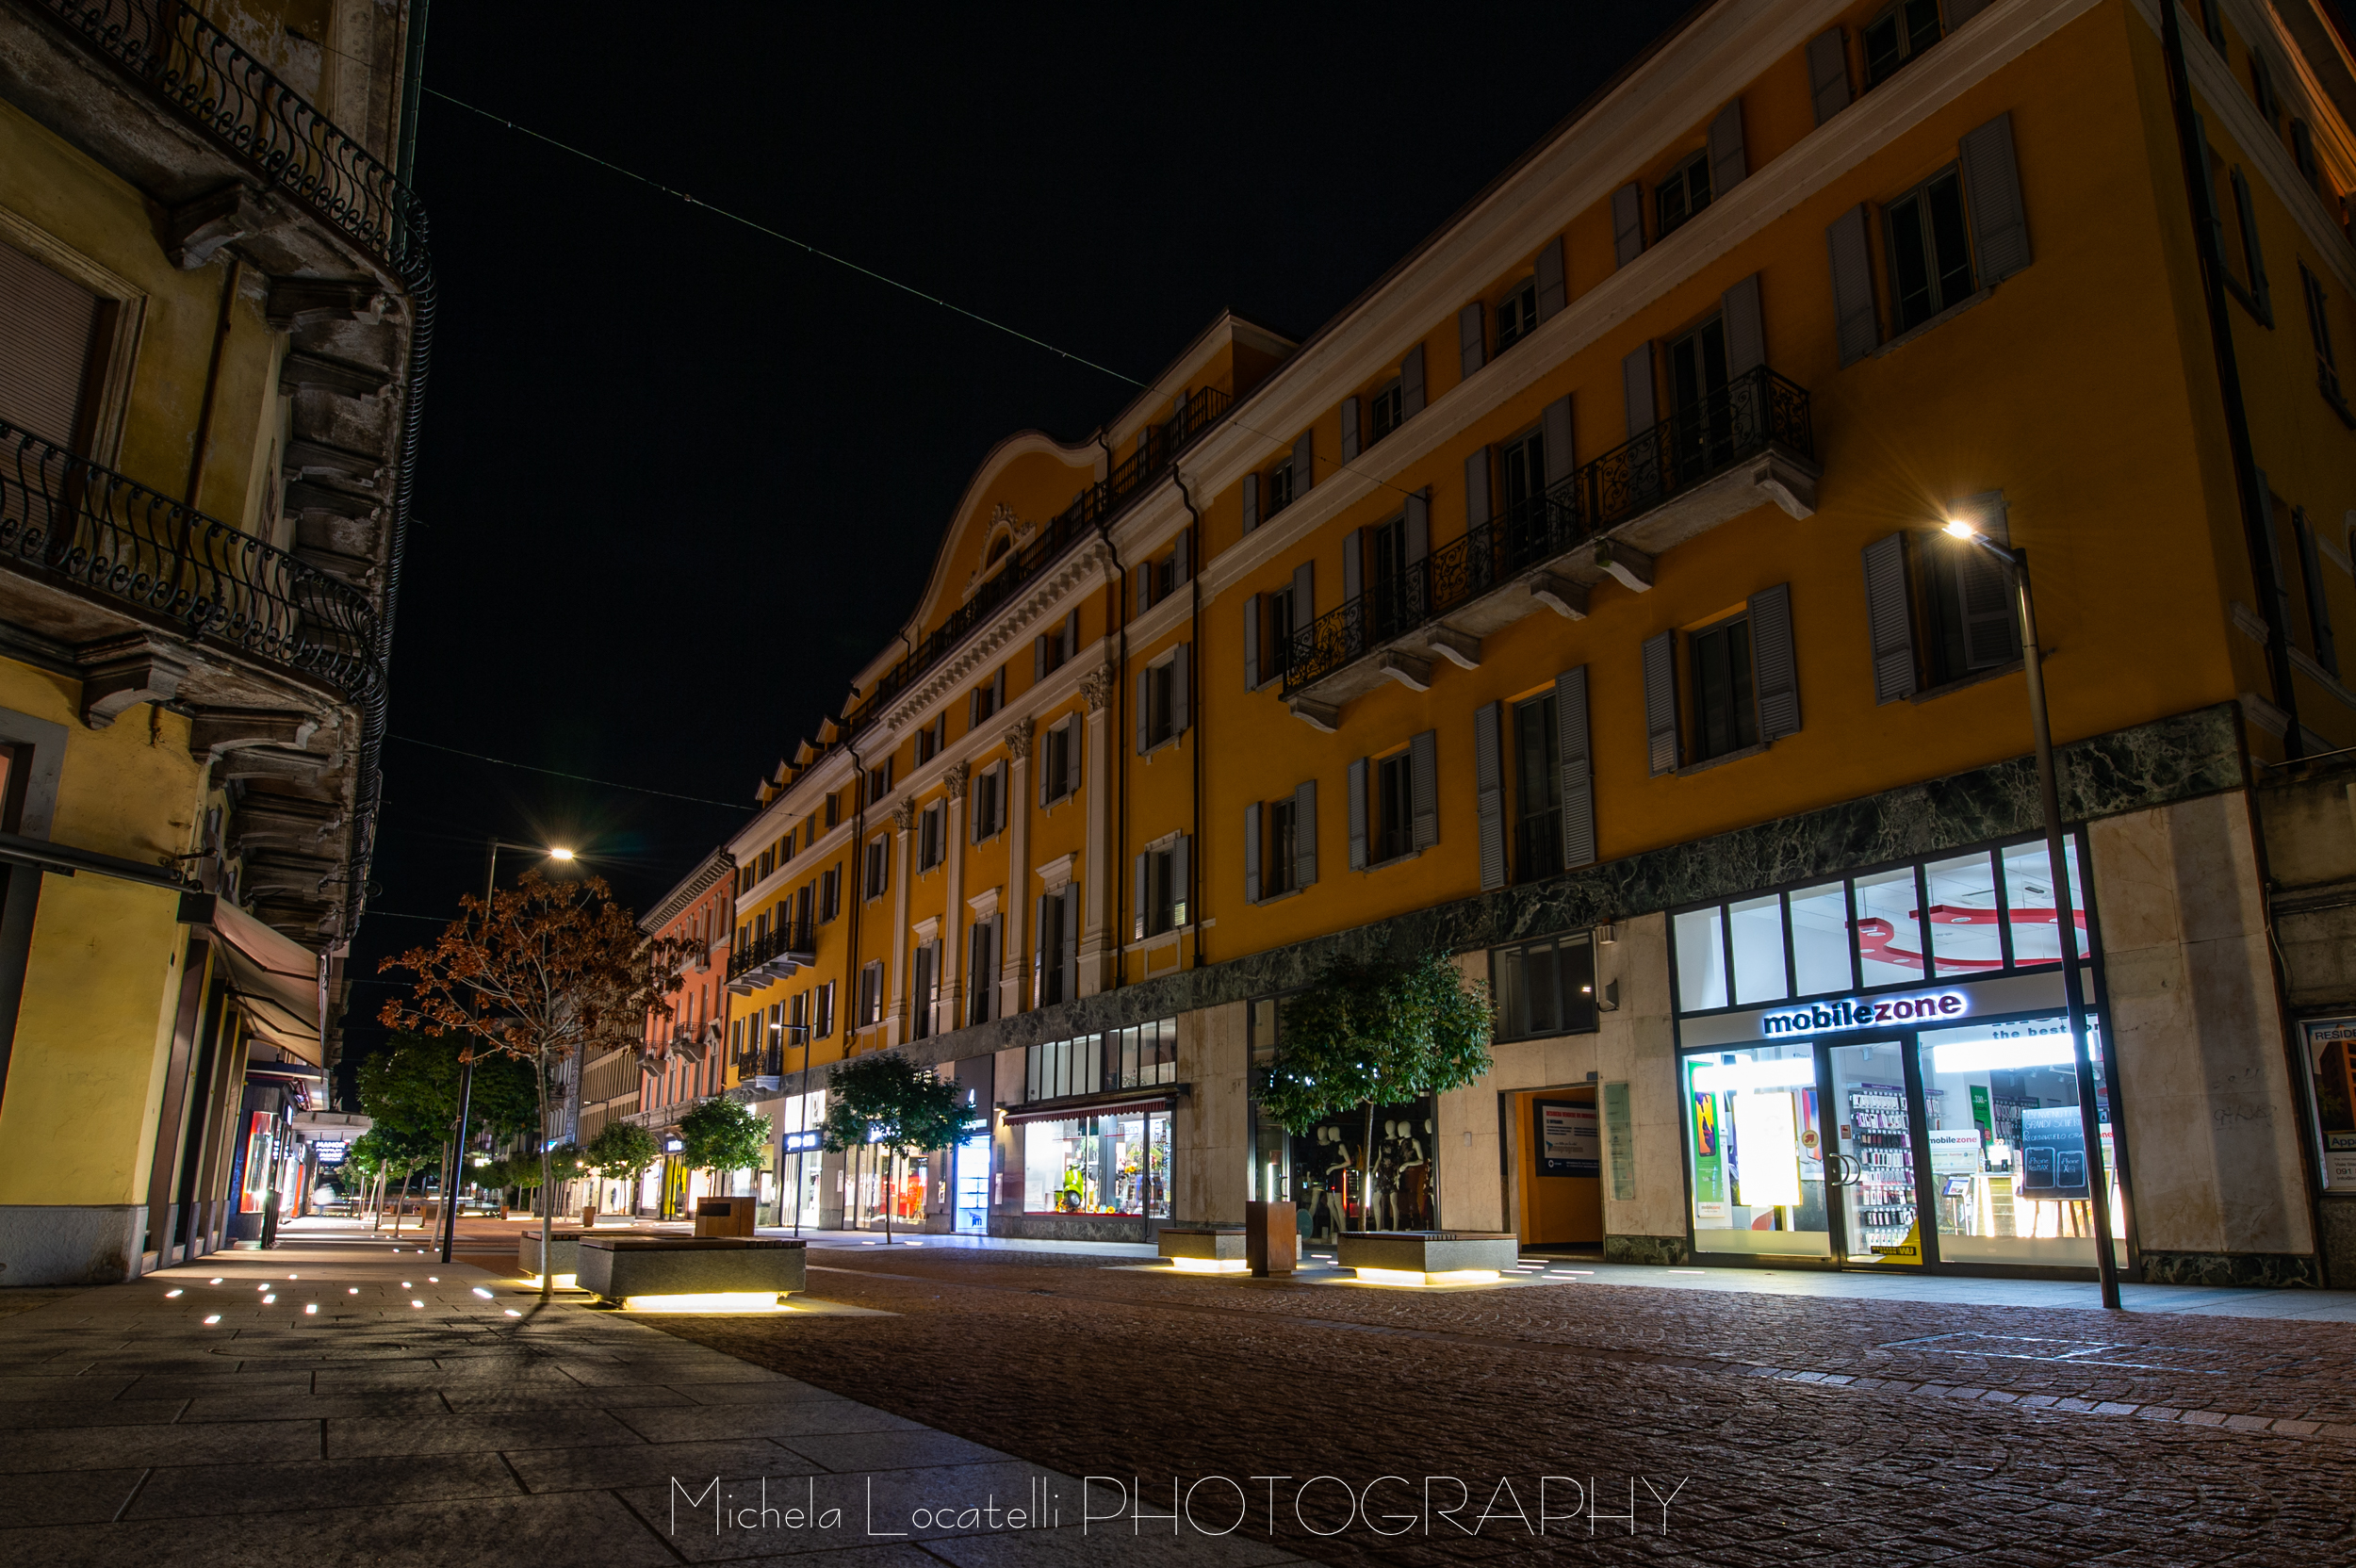 Bellinzona Places,Switzerland,michela@photolocatelli.ch,photolocatelli.ch,svizzera,swiss,ticino,